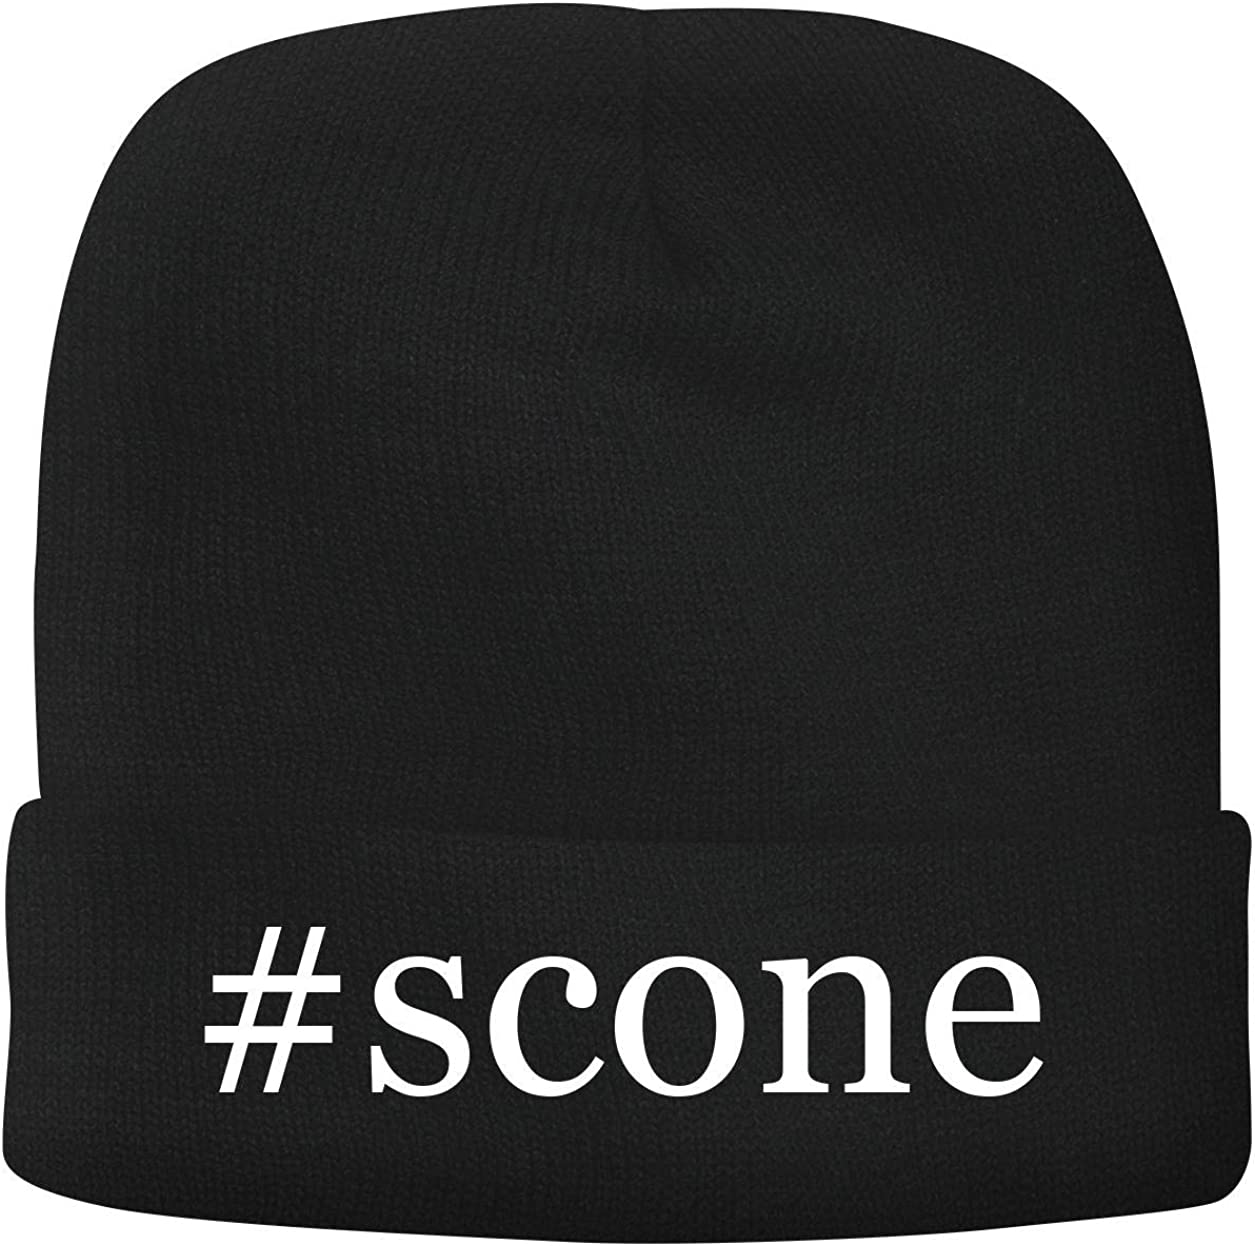 BH Cool Designs #Scone Special price - Comfortable Hashtag Beanie Men's Soft High quality new